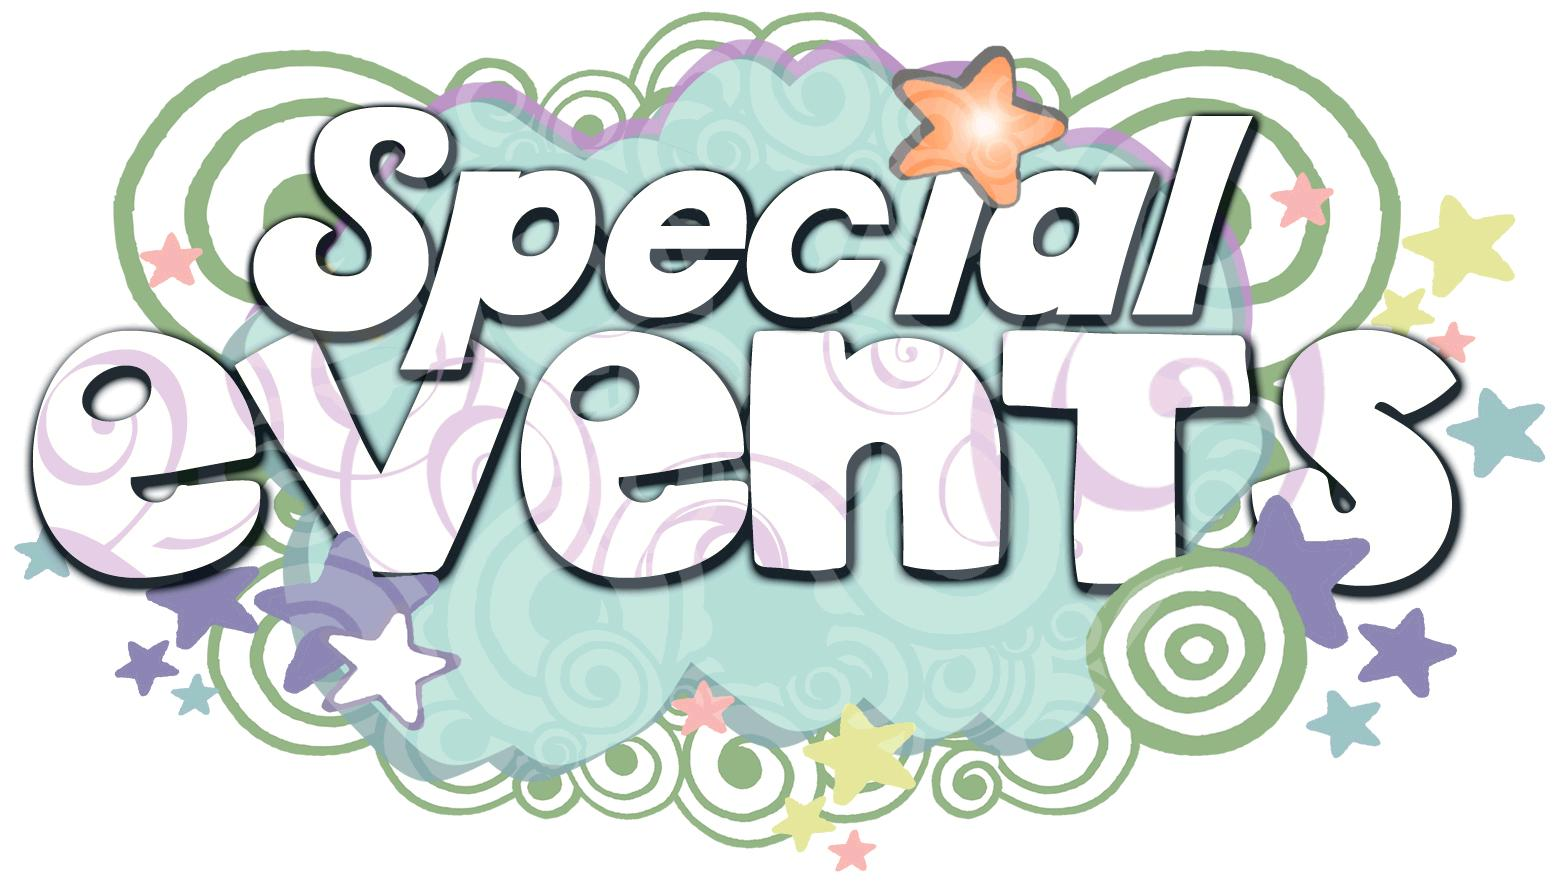 Free Community Events Clipart